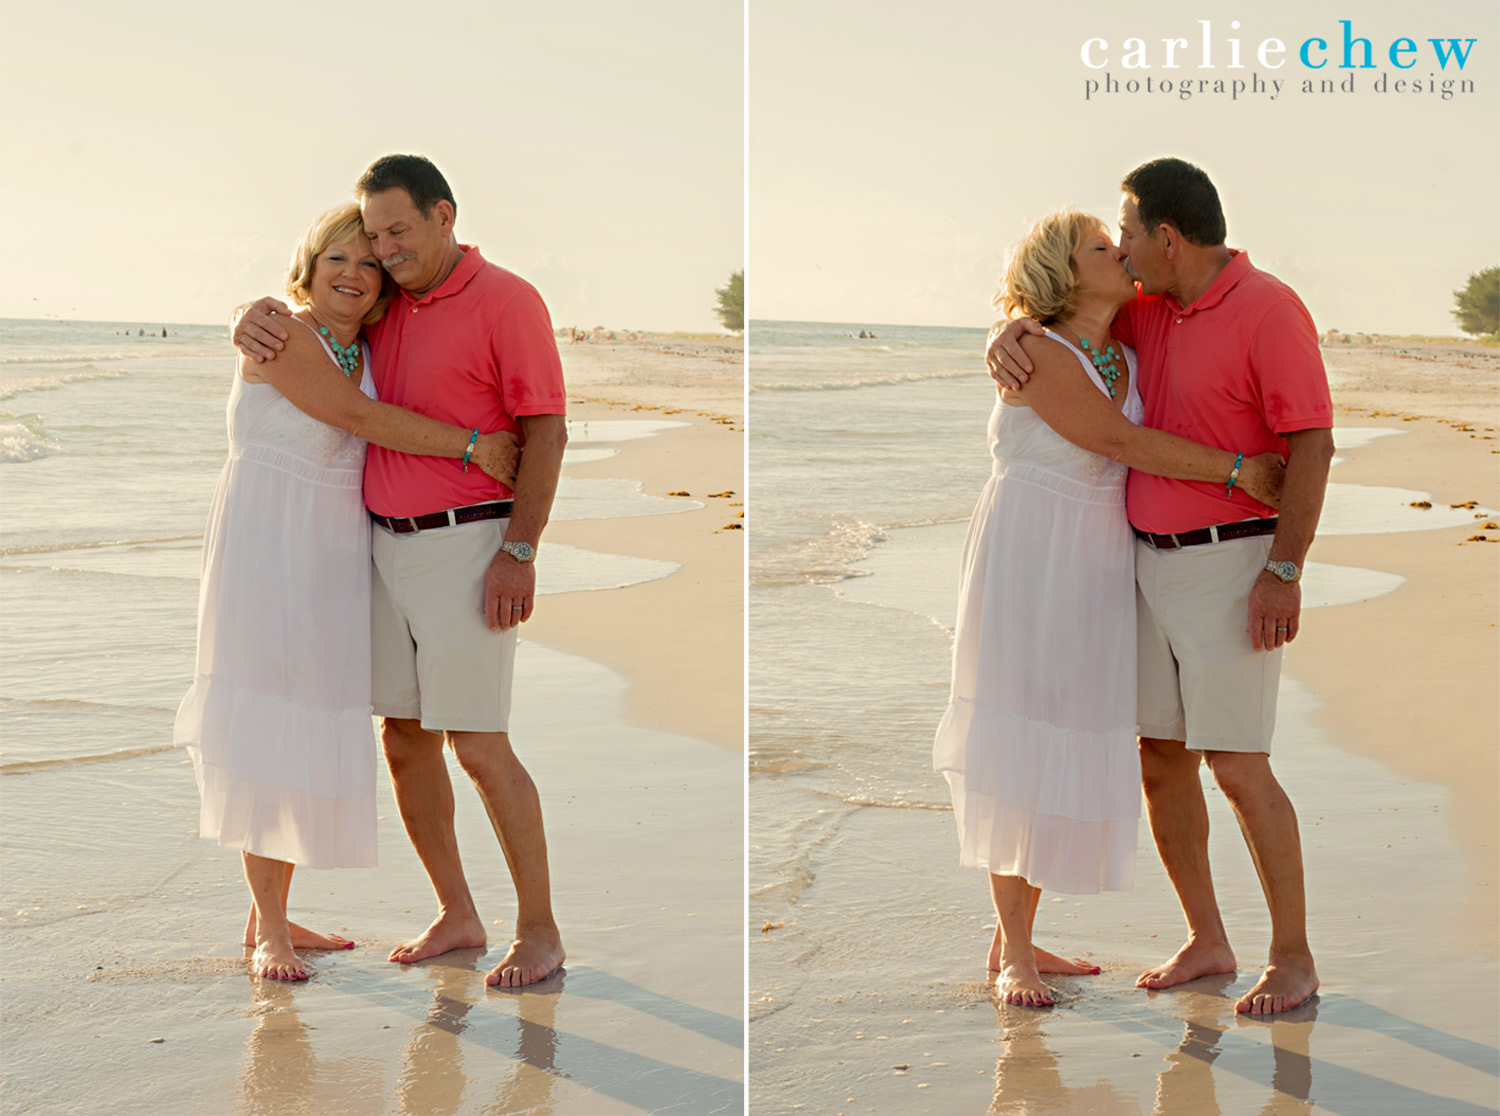 Grandparents kiss at Anna Maria Island beach in Florida for family photography with Carlie Chew.